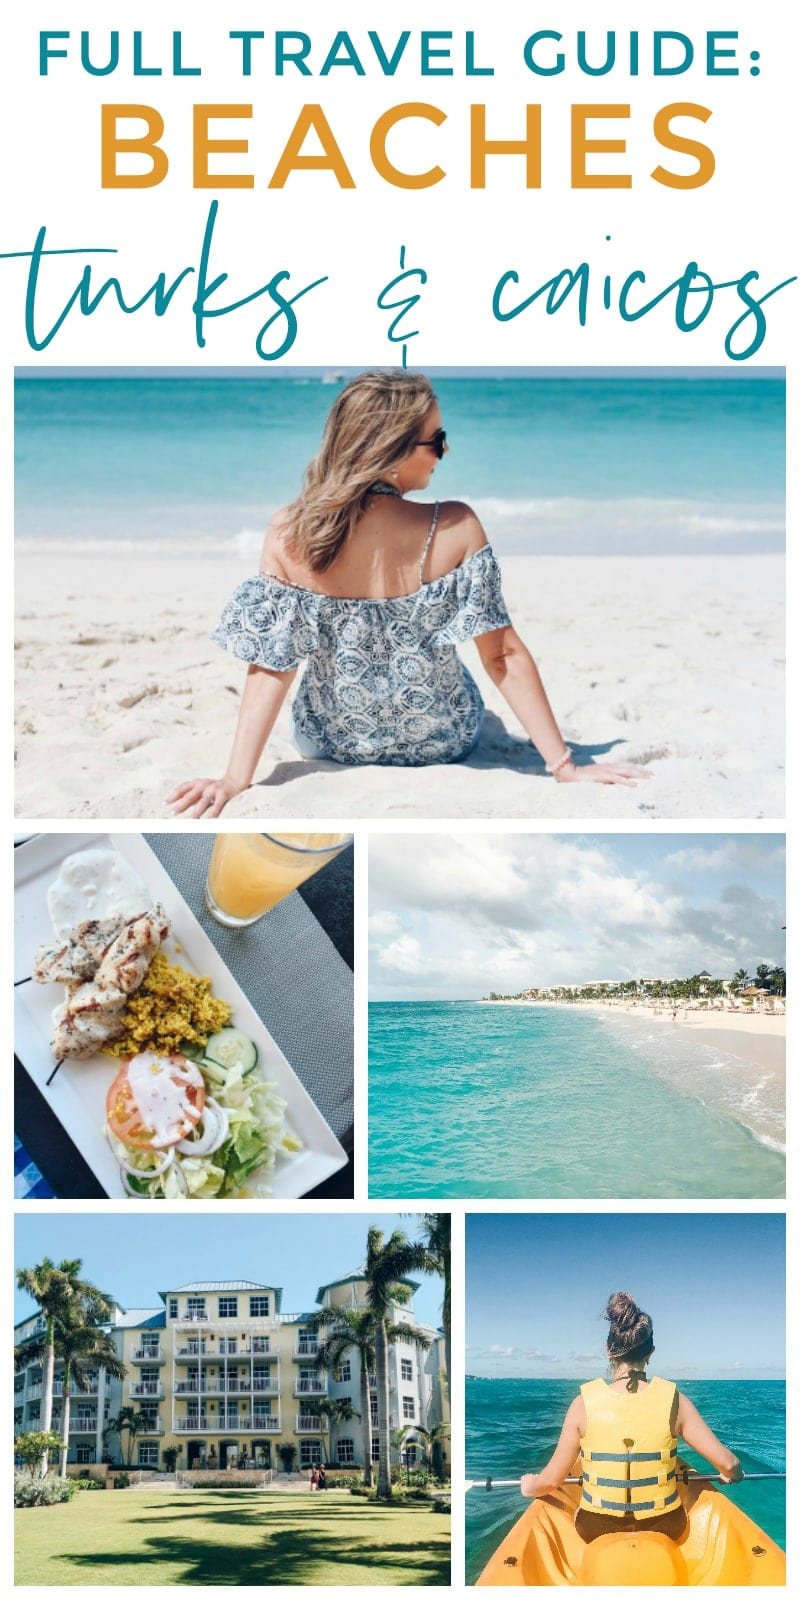 Houston family and travel blogger Meg O. on the Go shares a full travel guide to Beaches Turks and Caicos